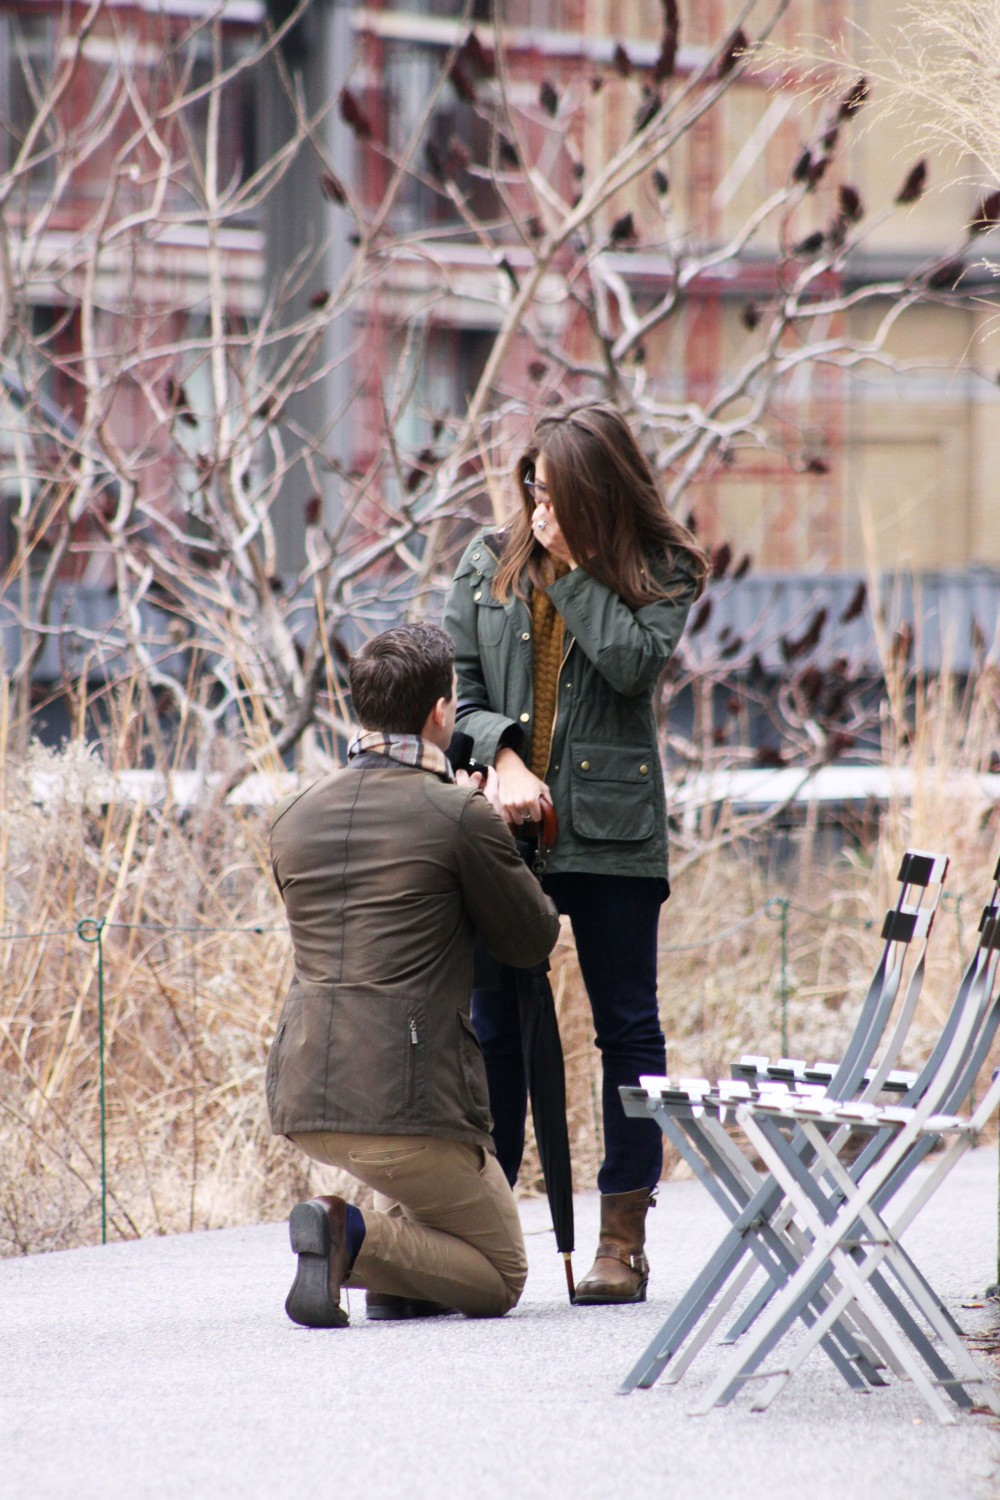 Image 2 of Emily and Paul | New York City Highline Proposal